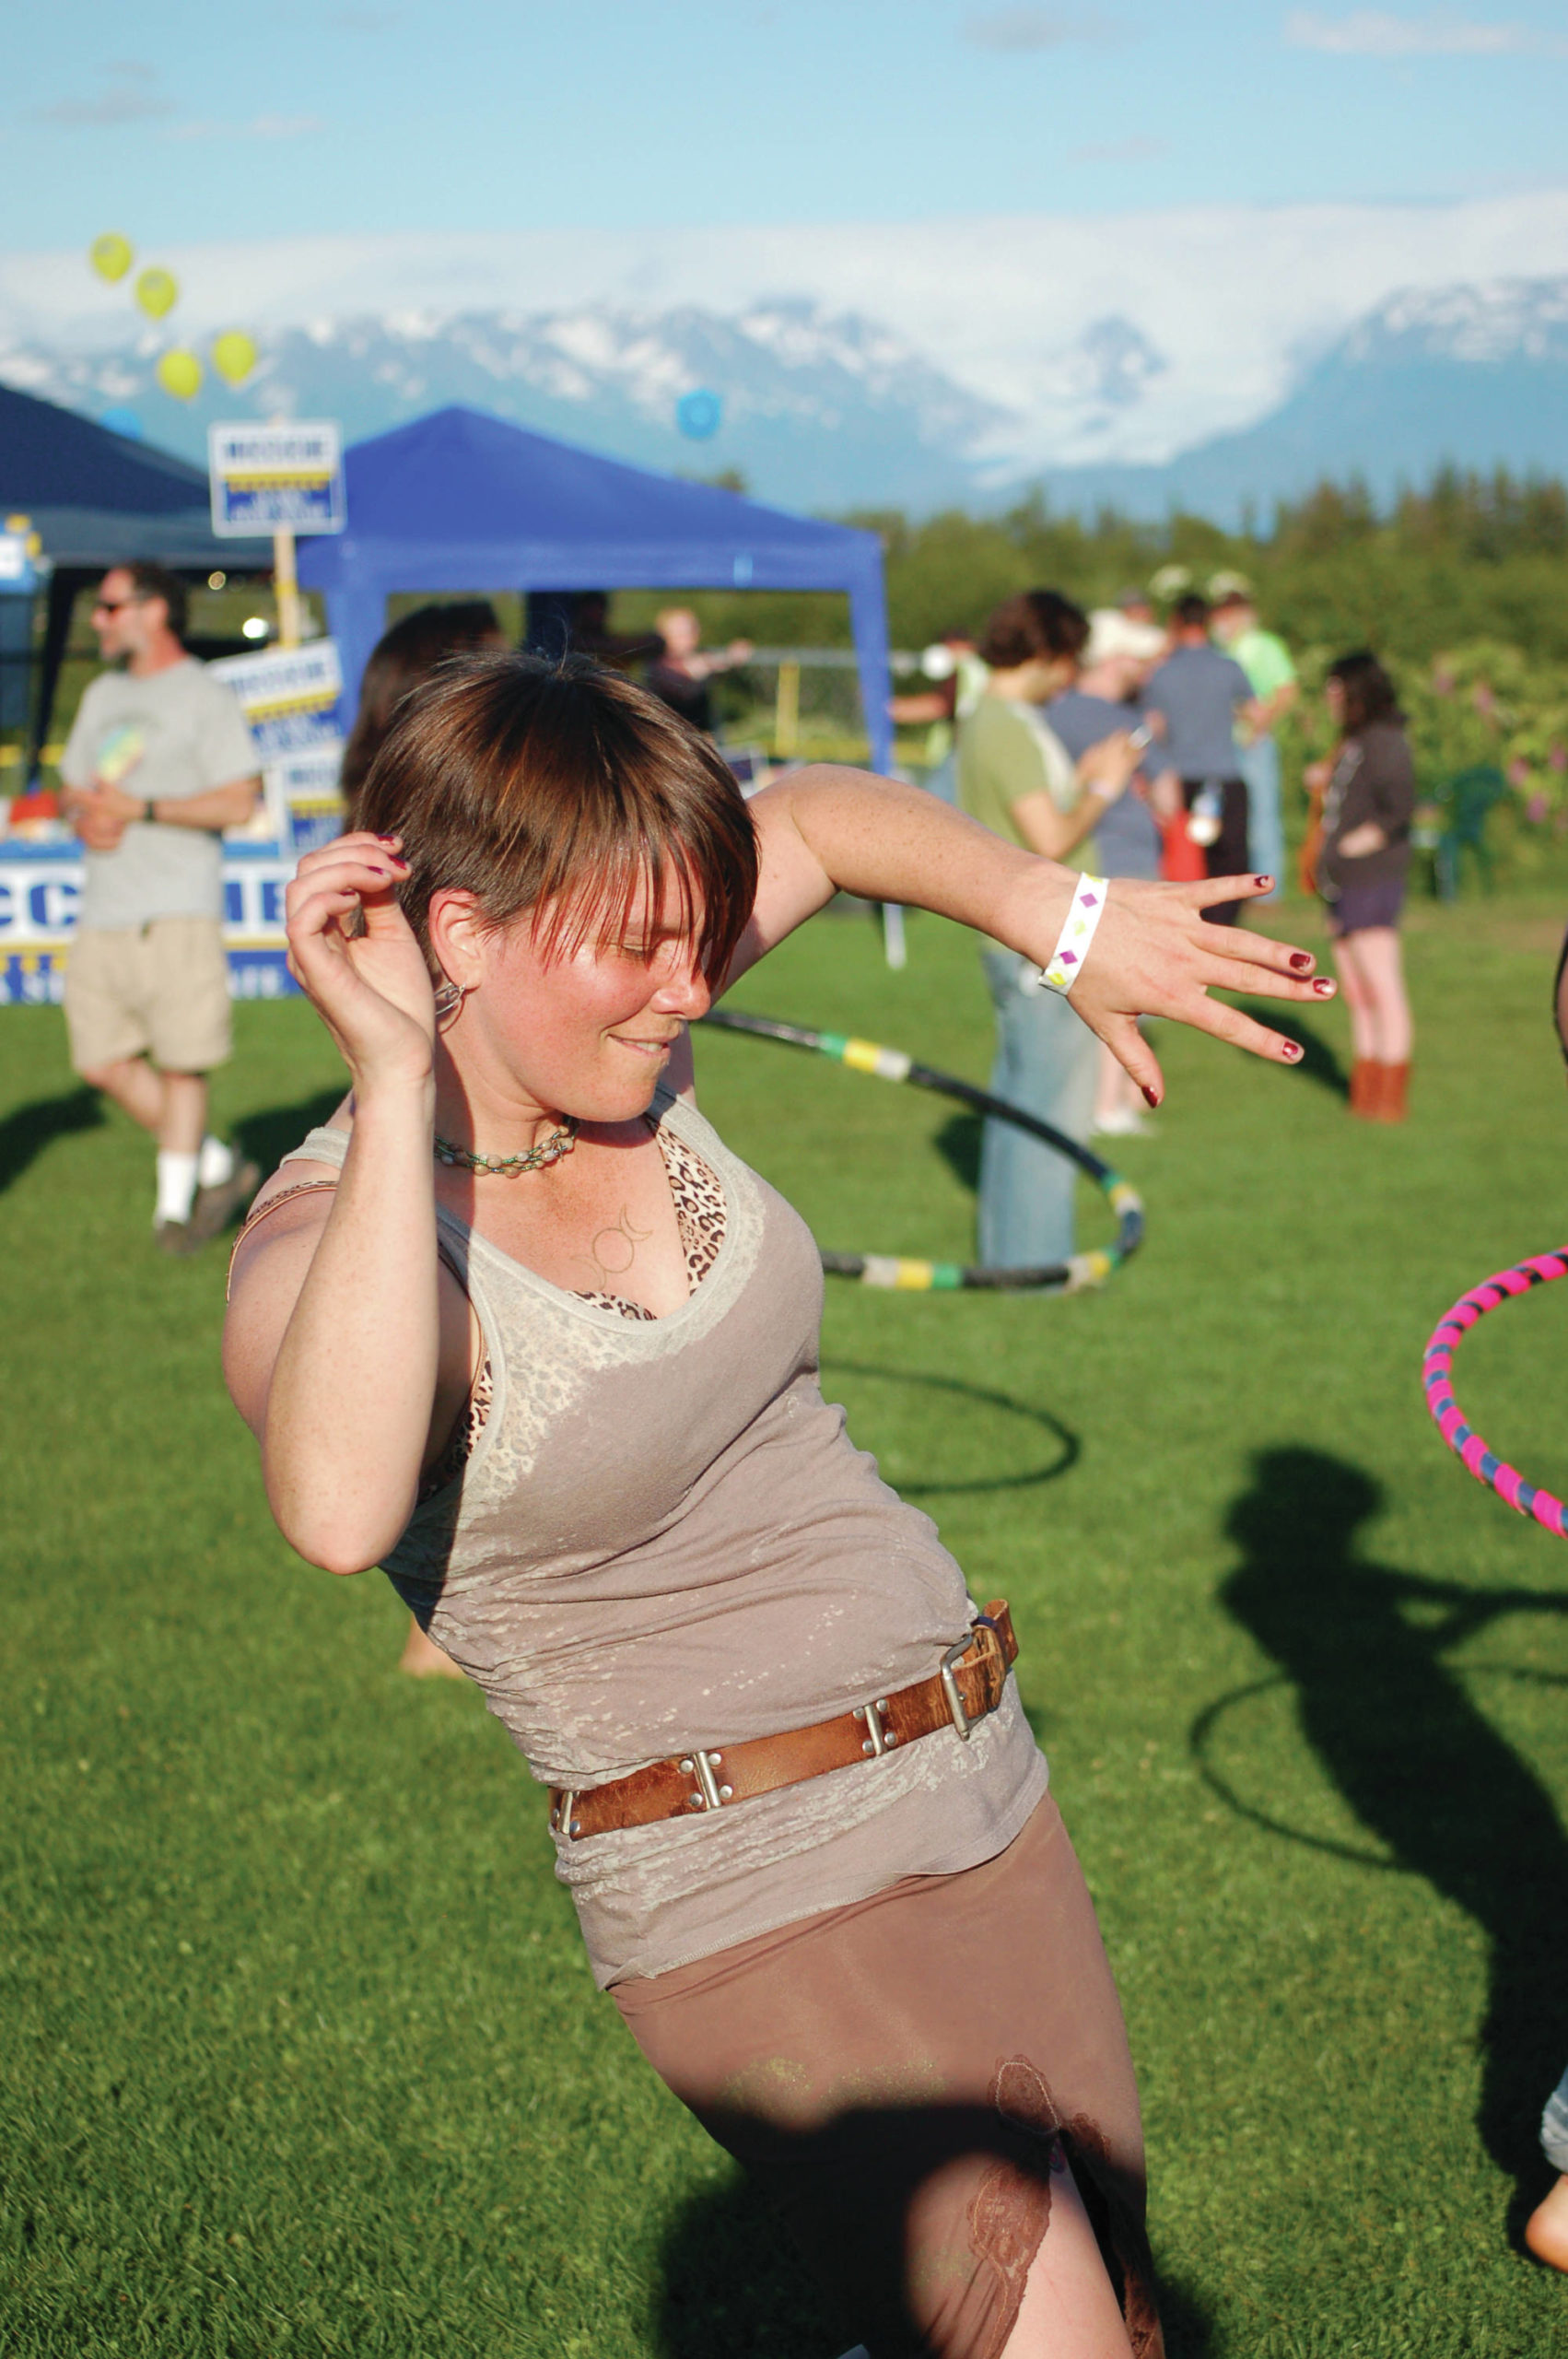 Kammi Matson hoops to music at the KBBI Concert on the Lawn n July 28, 2012, at Karen Hornaday Park in Homer, Alaska. (Photo by Michael Armstrong/Homer News)